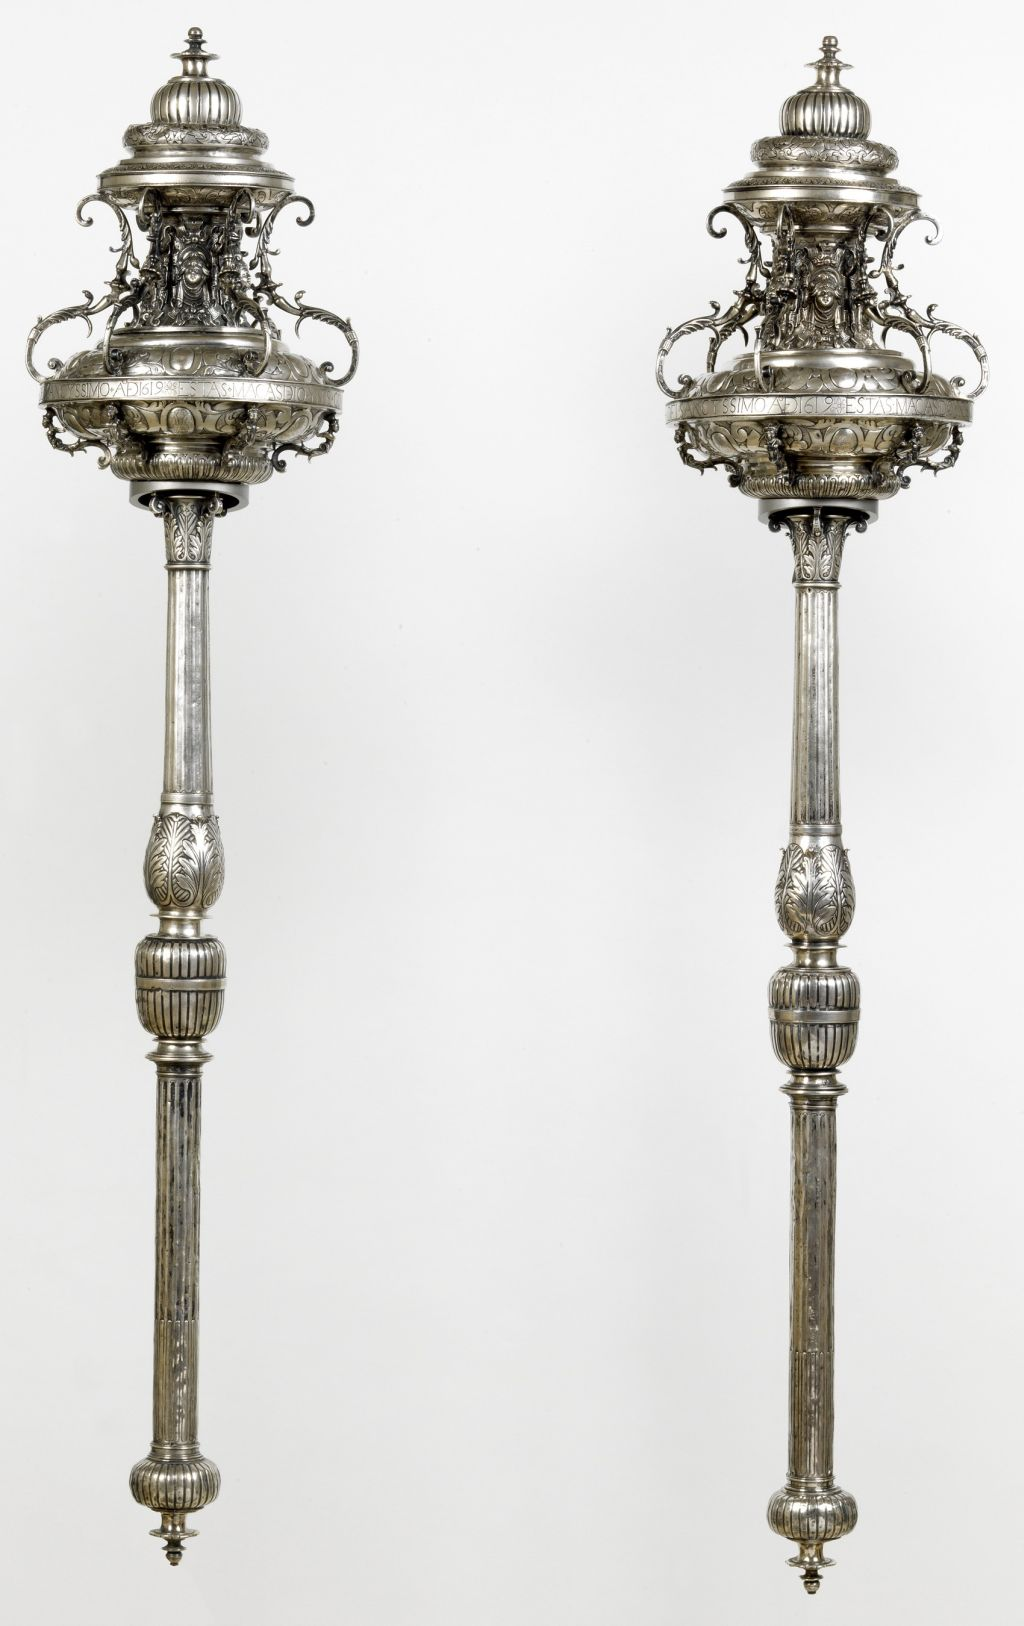 Pair of maces, Spain